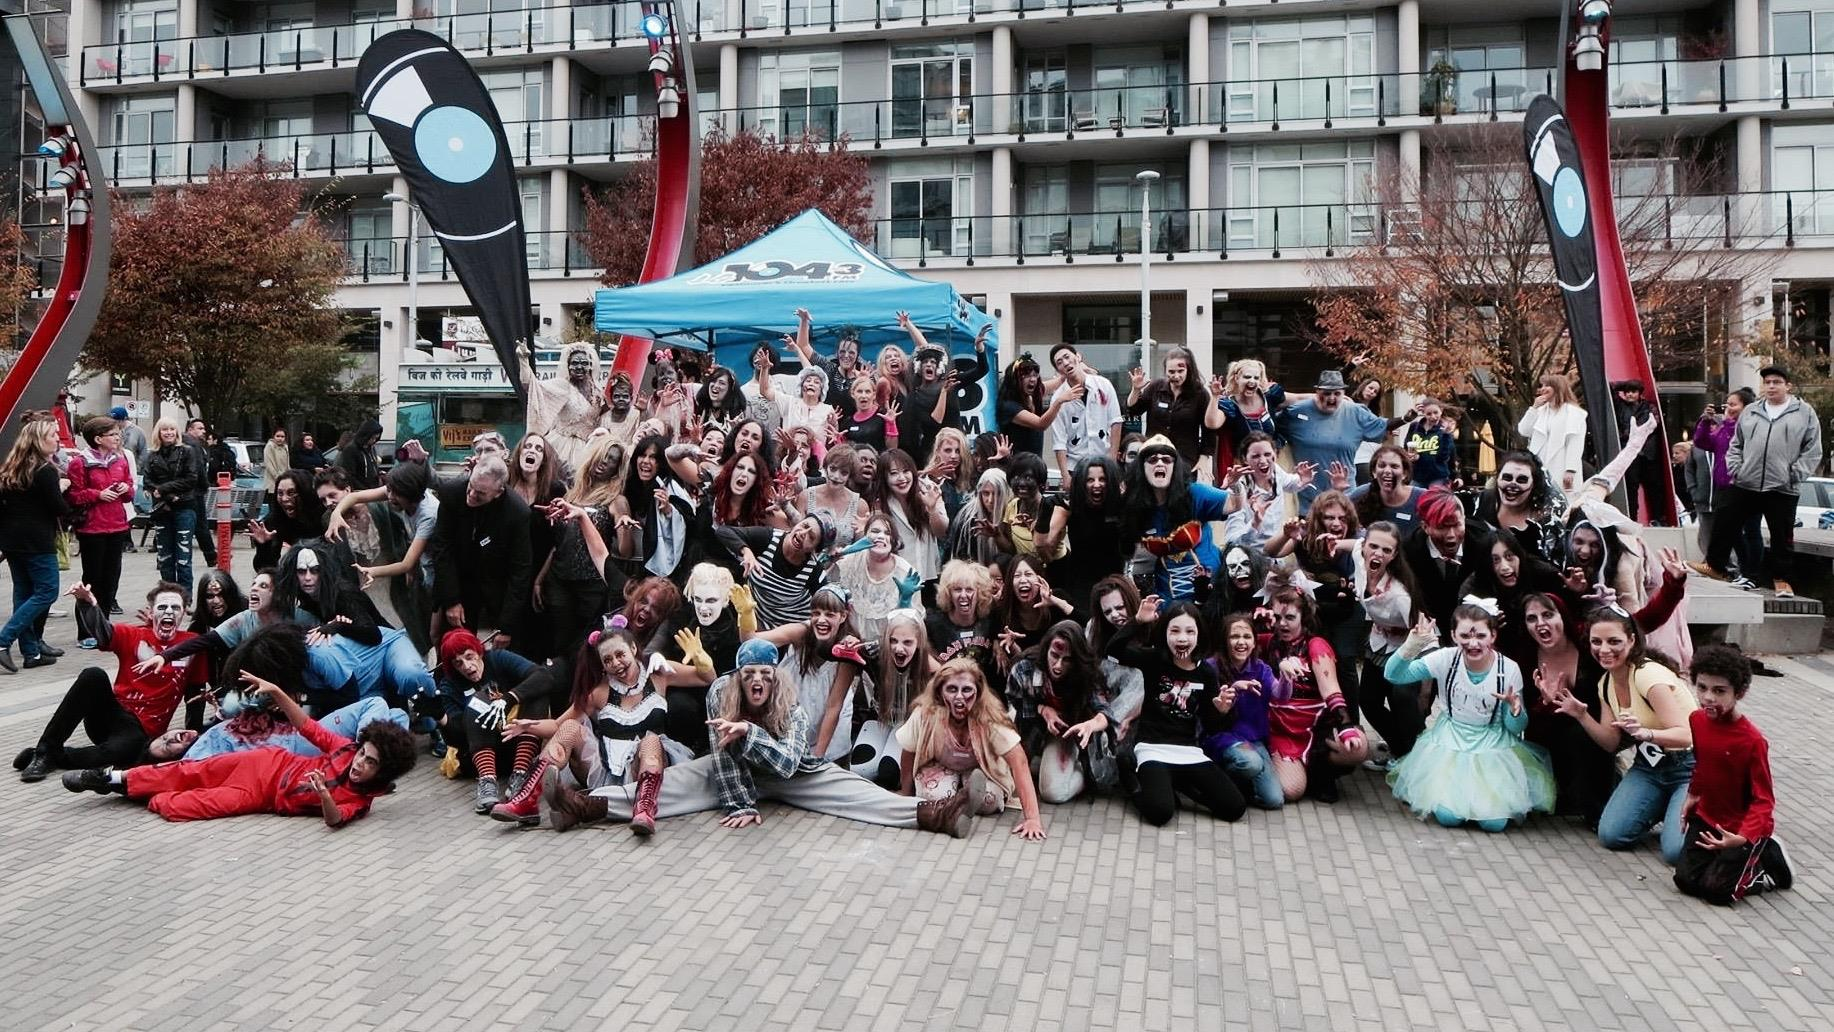 #ThrillVancouver is taking over Olympic Village Plaza in Vancouver in October (Thrill The World Vancouver/Facebook)